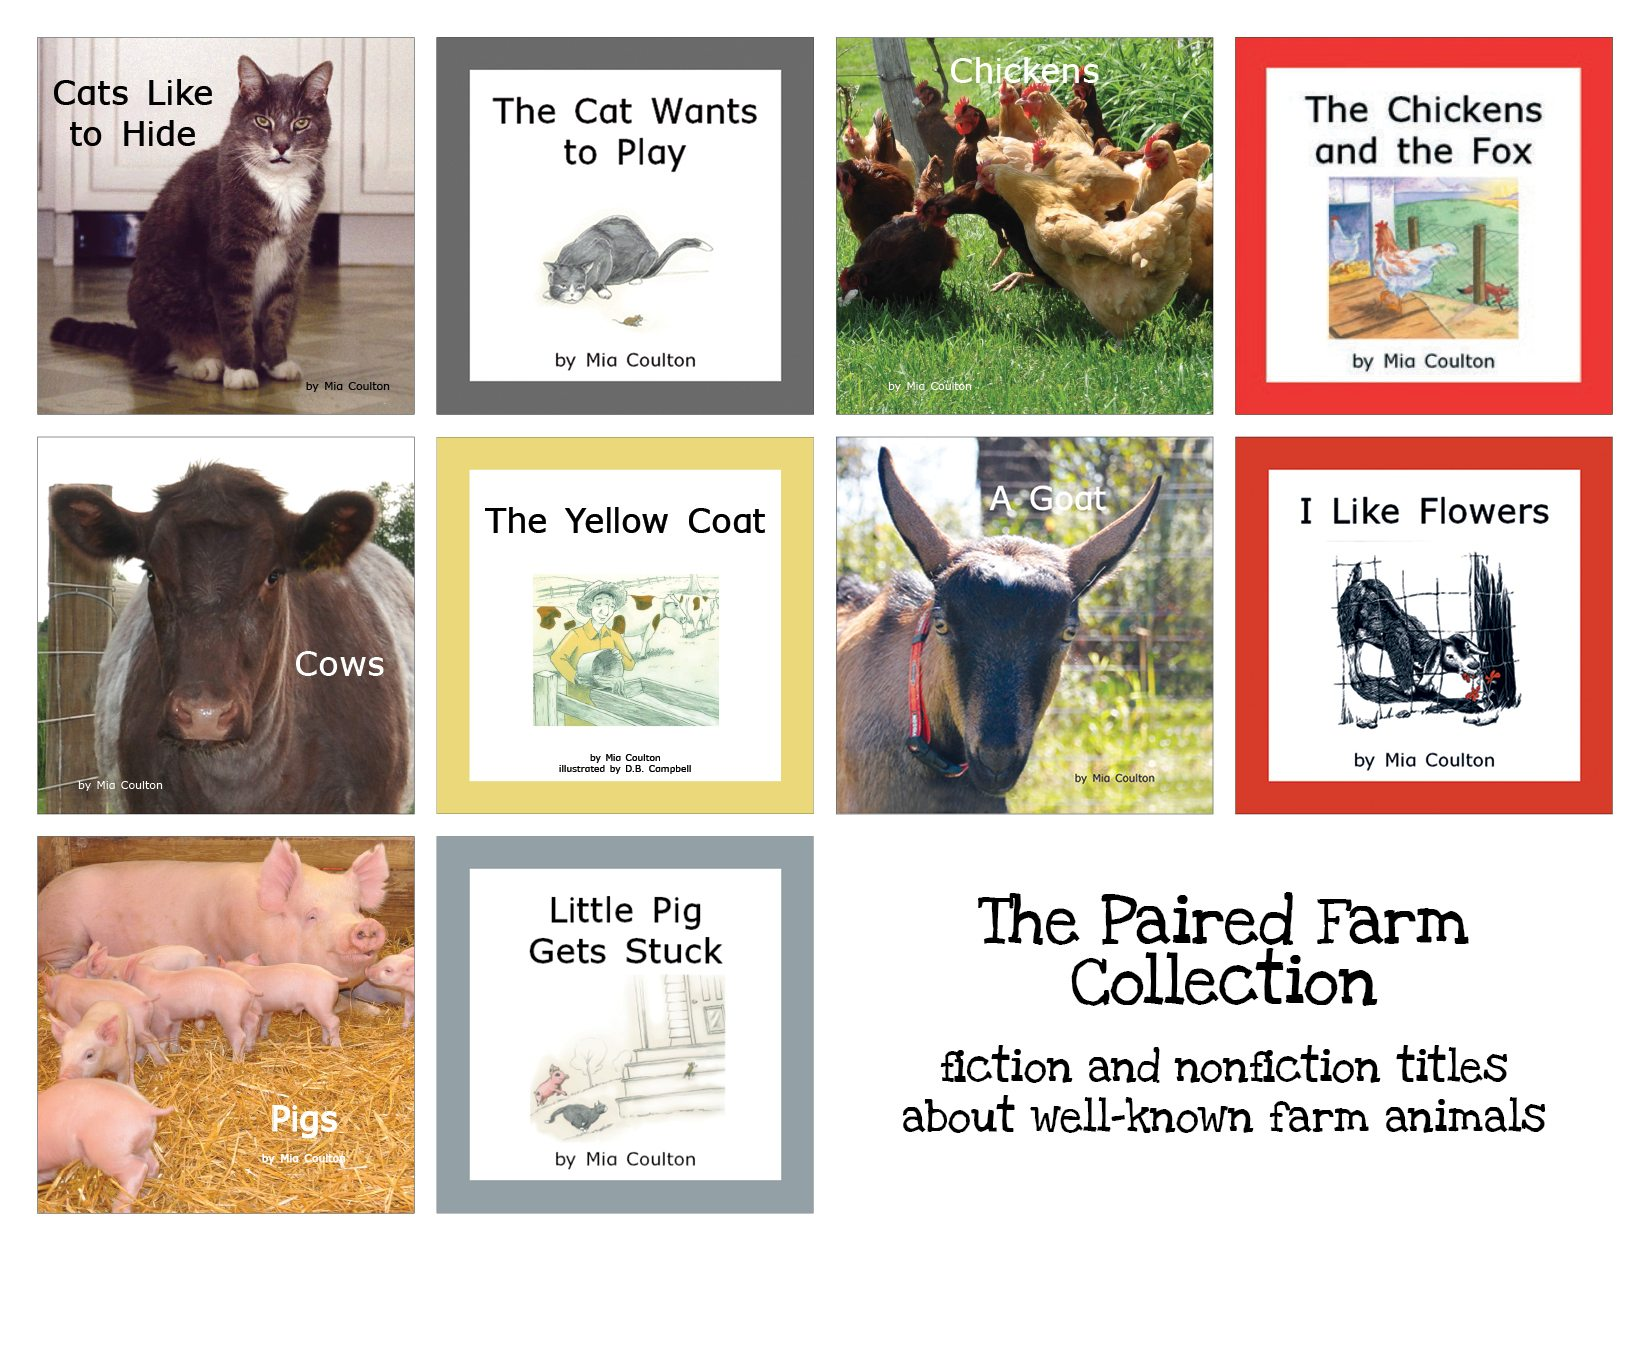 The Paired Farm Collection